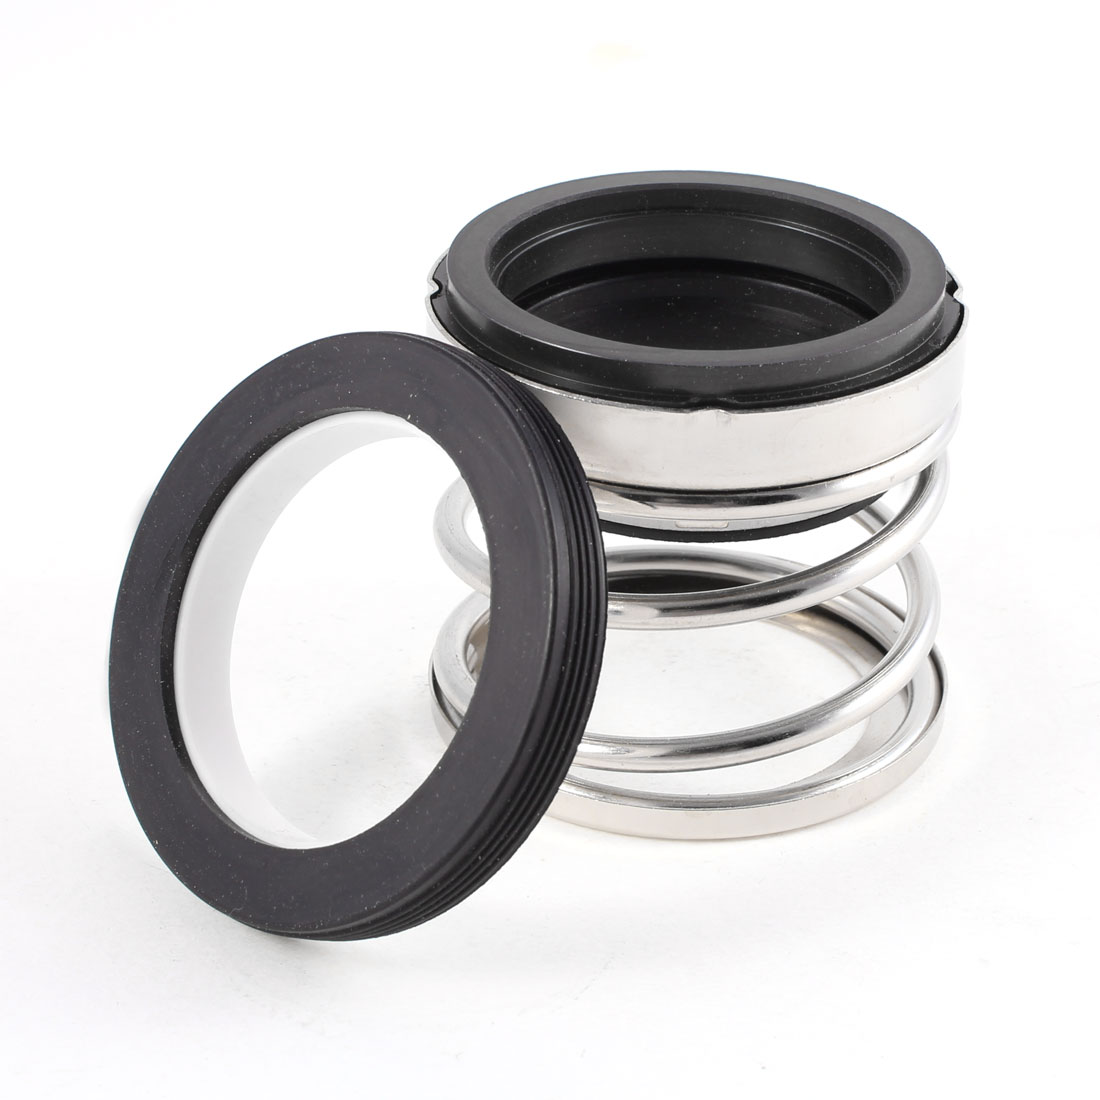 Water Pump Parts Single Coil Spring 38mm Mechanical Shaft Seal B1A-38